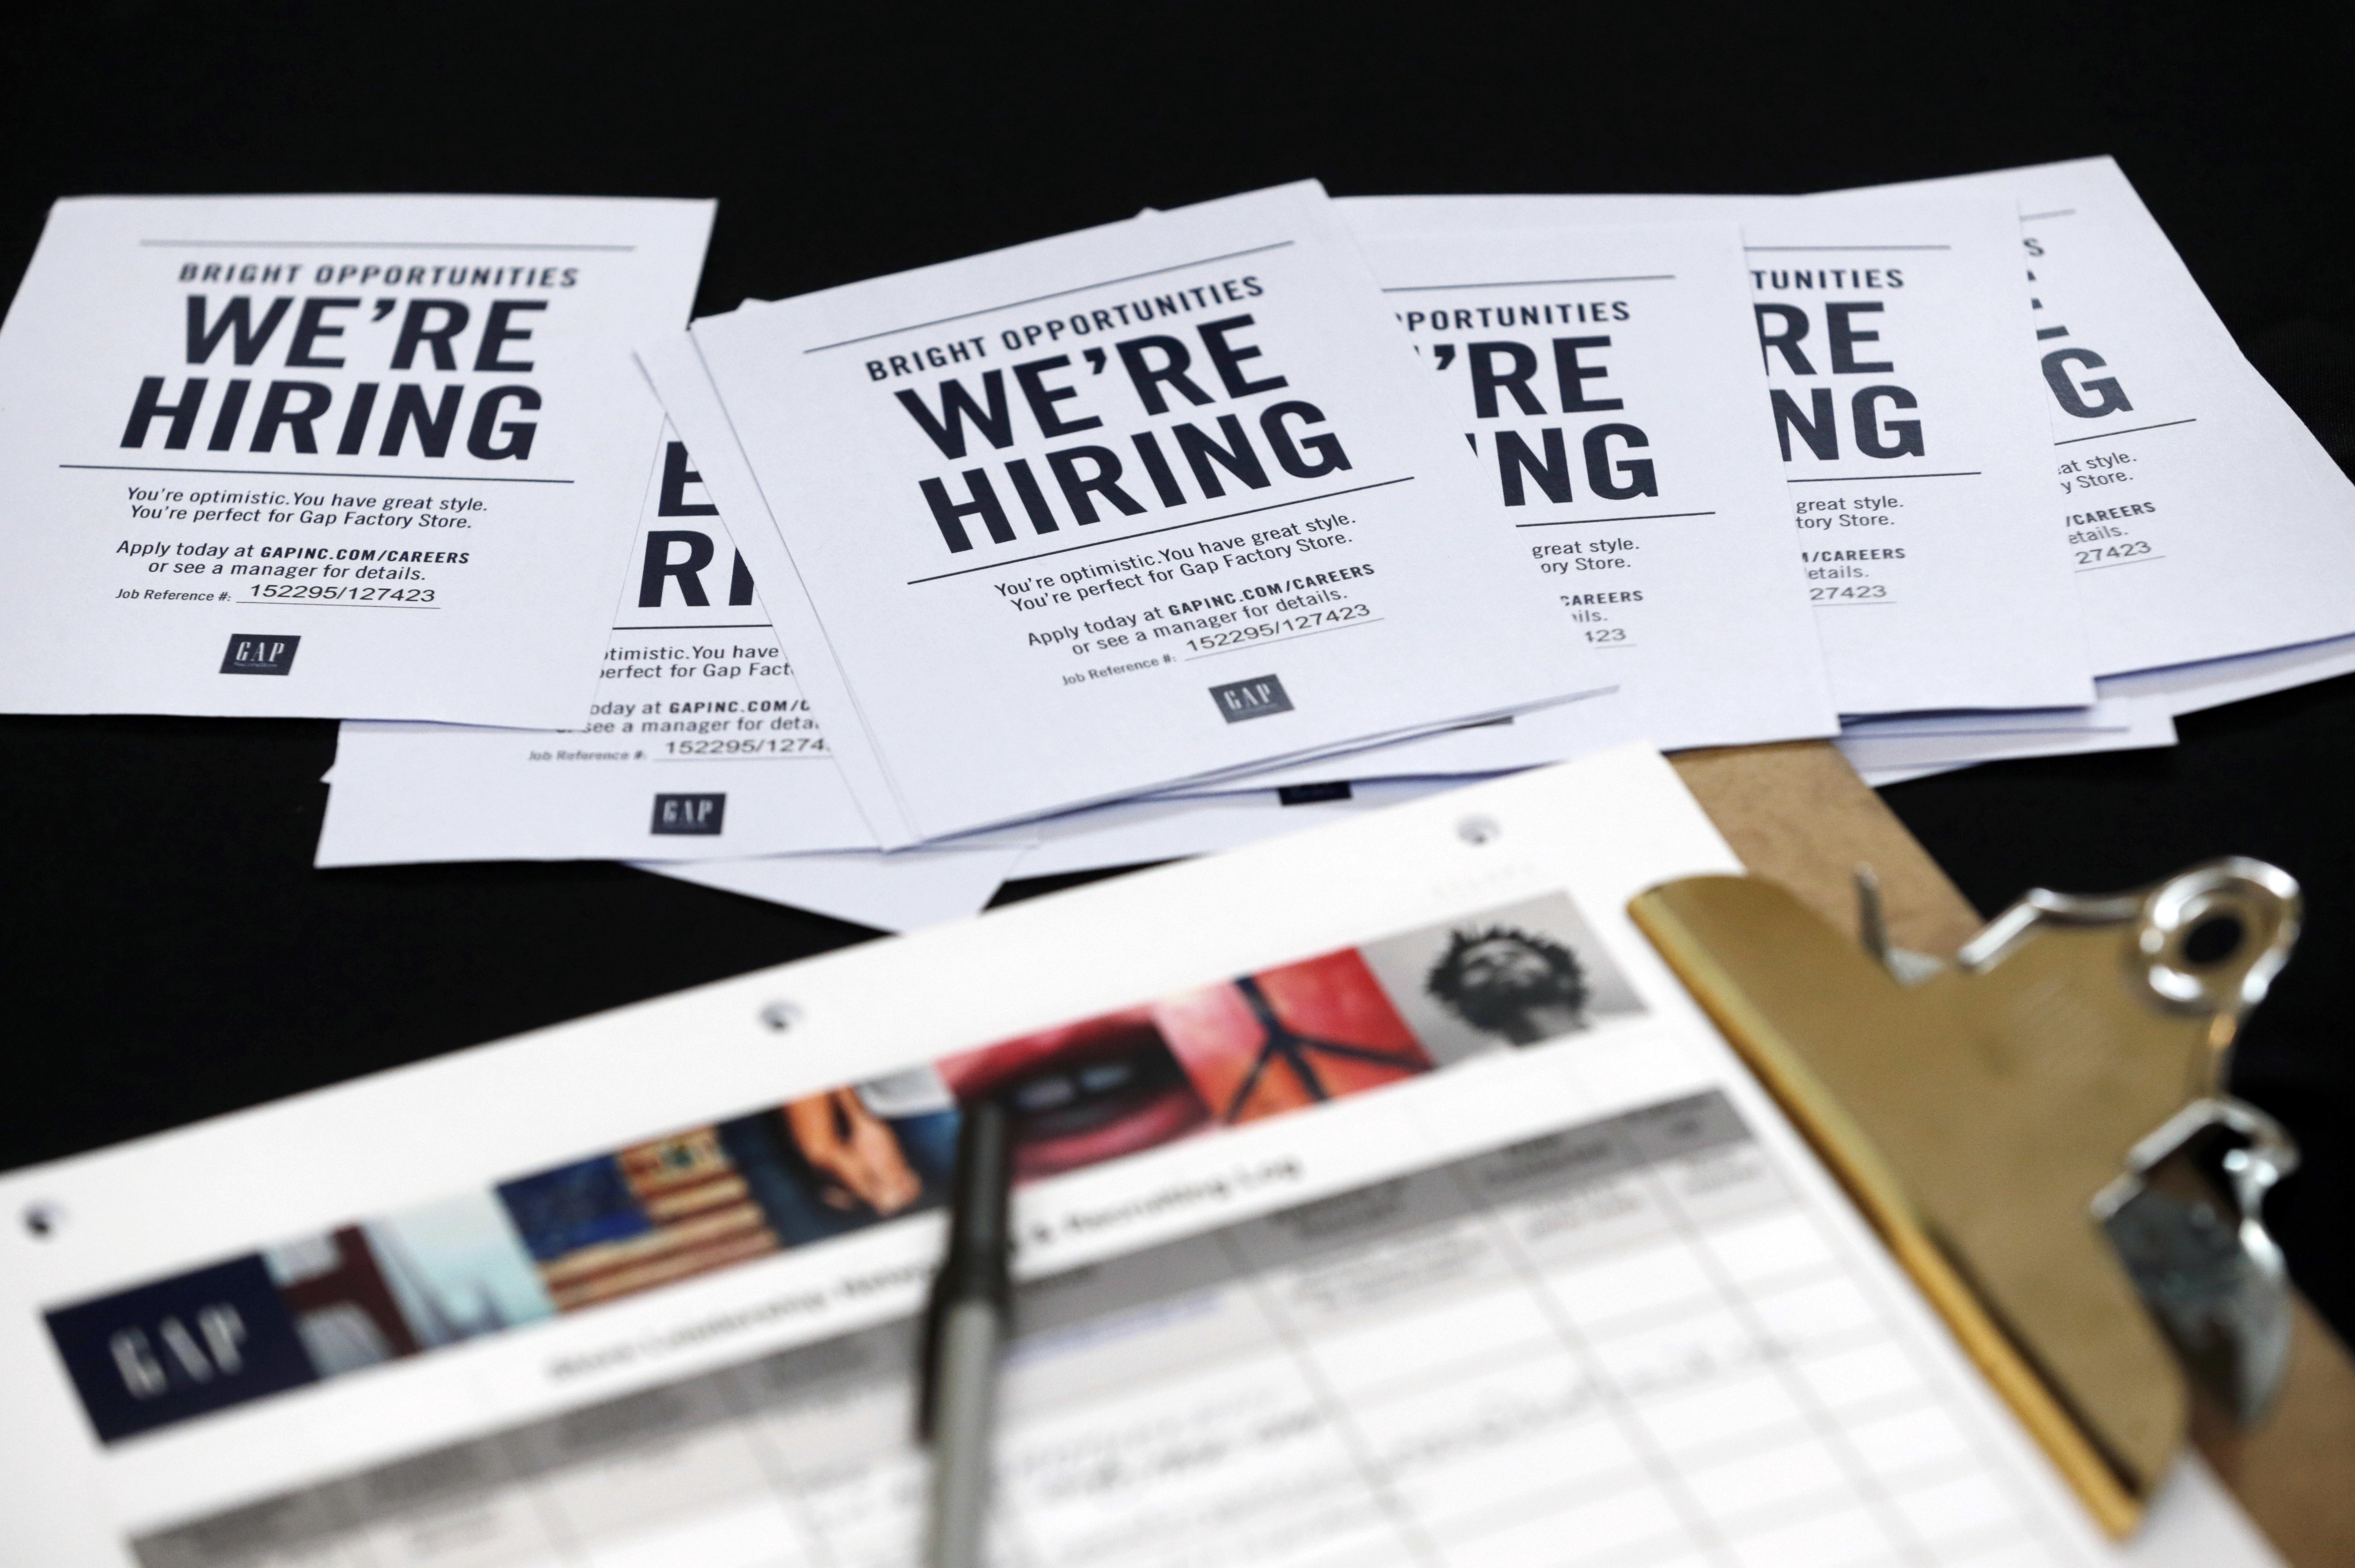 Job applications and information for the Gap Factory Store sit on a table during an October job fair at Dolphin Mall in Miami. (Photo by Wilfredo Lee/AP)